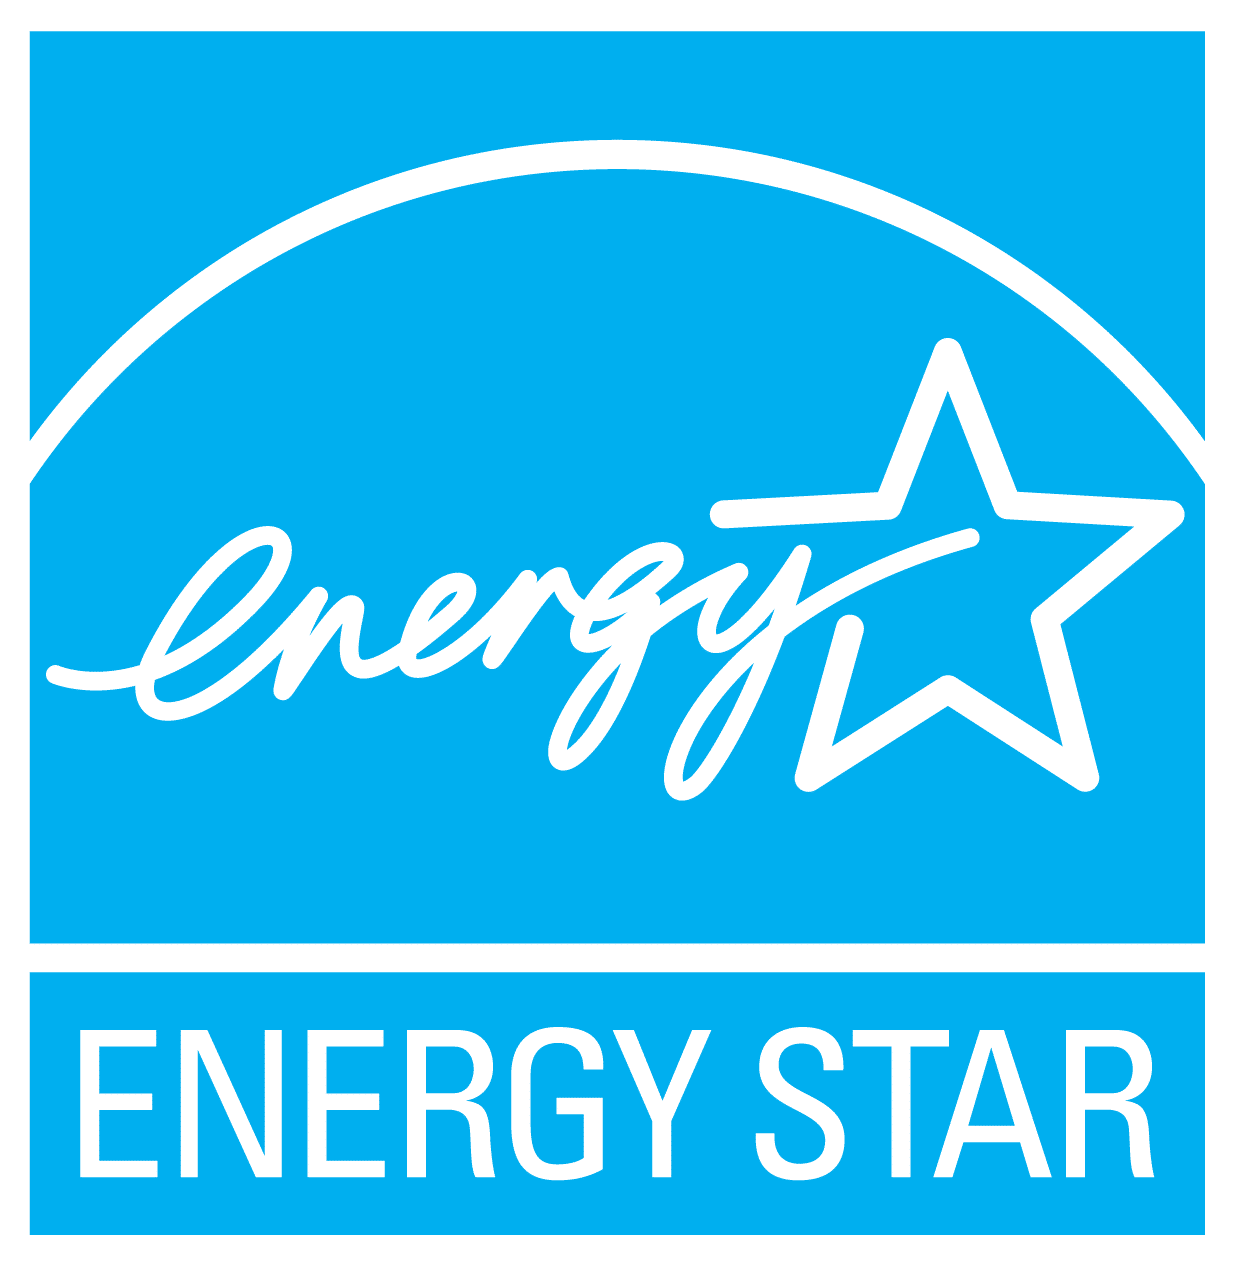 Silescent Lighting LED Lighting Fixtures are Energy Star Certified